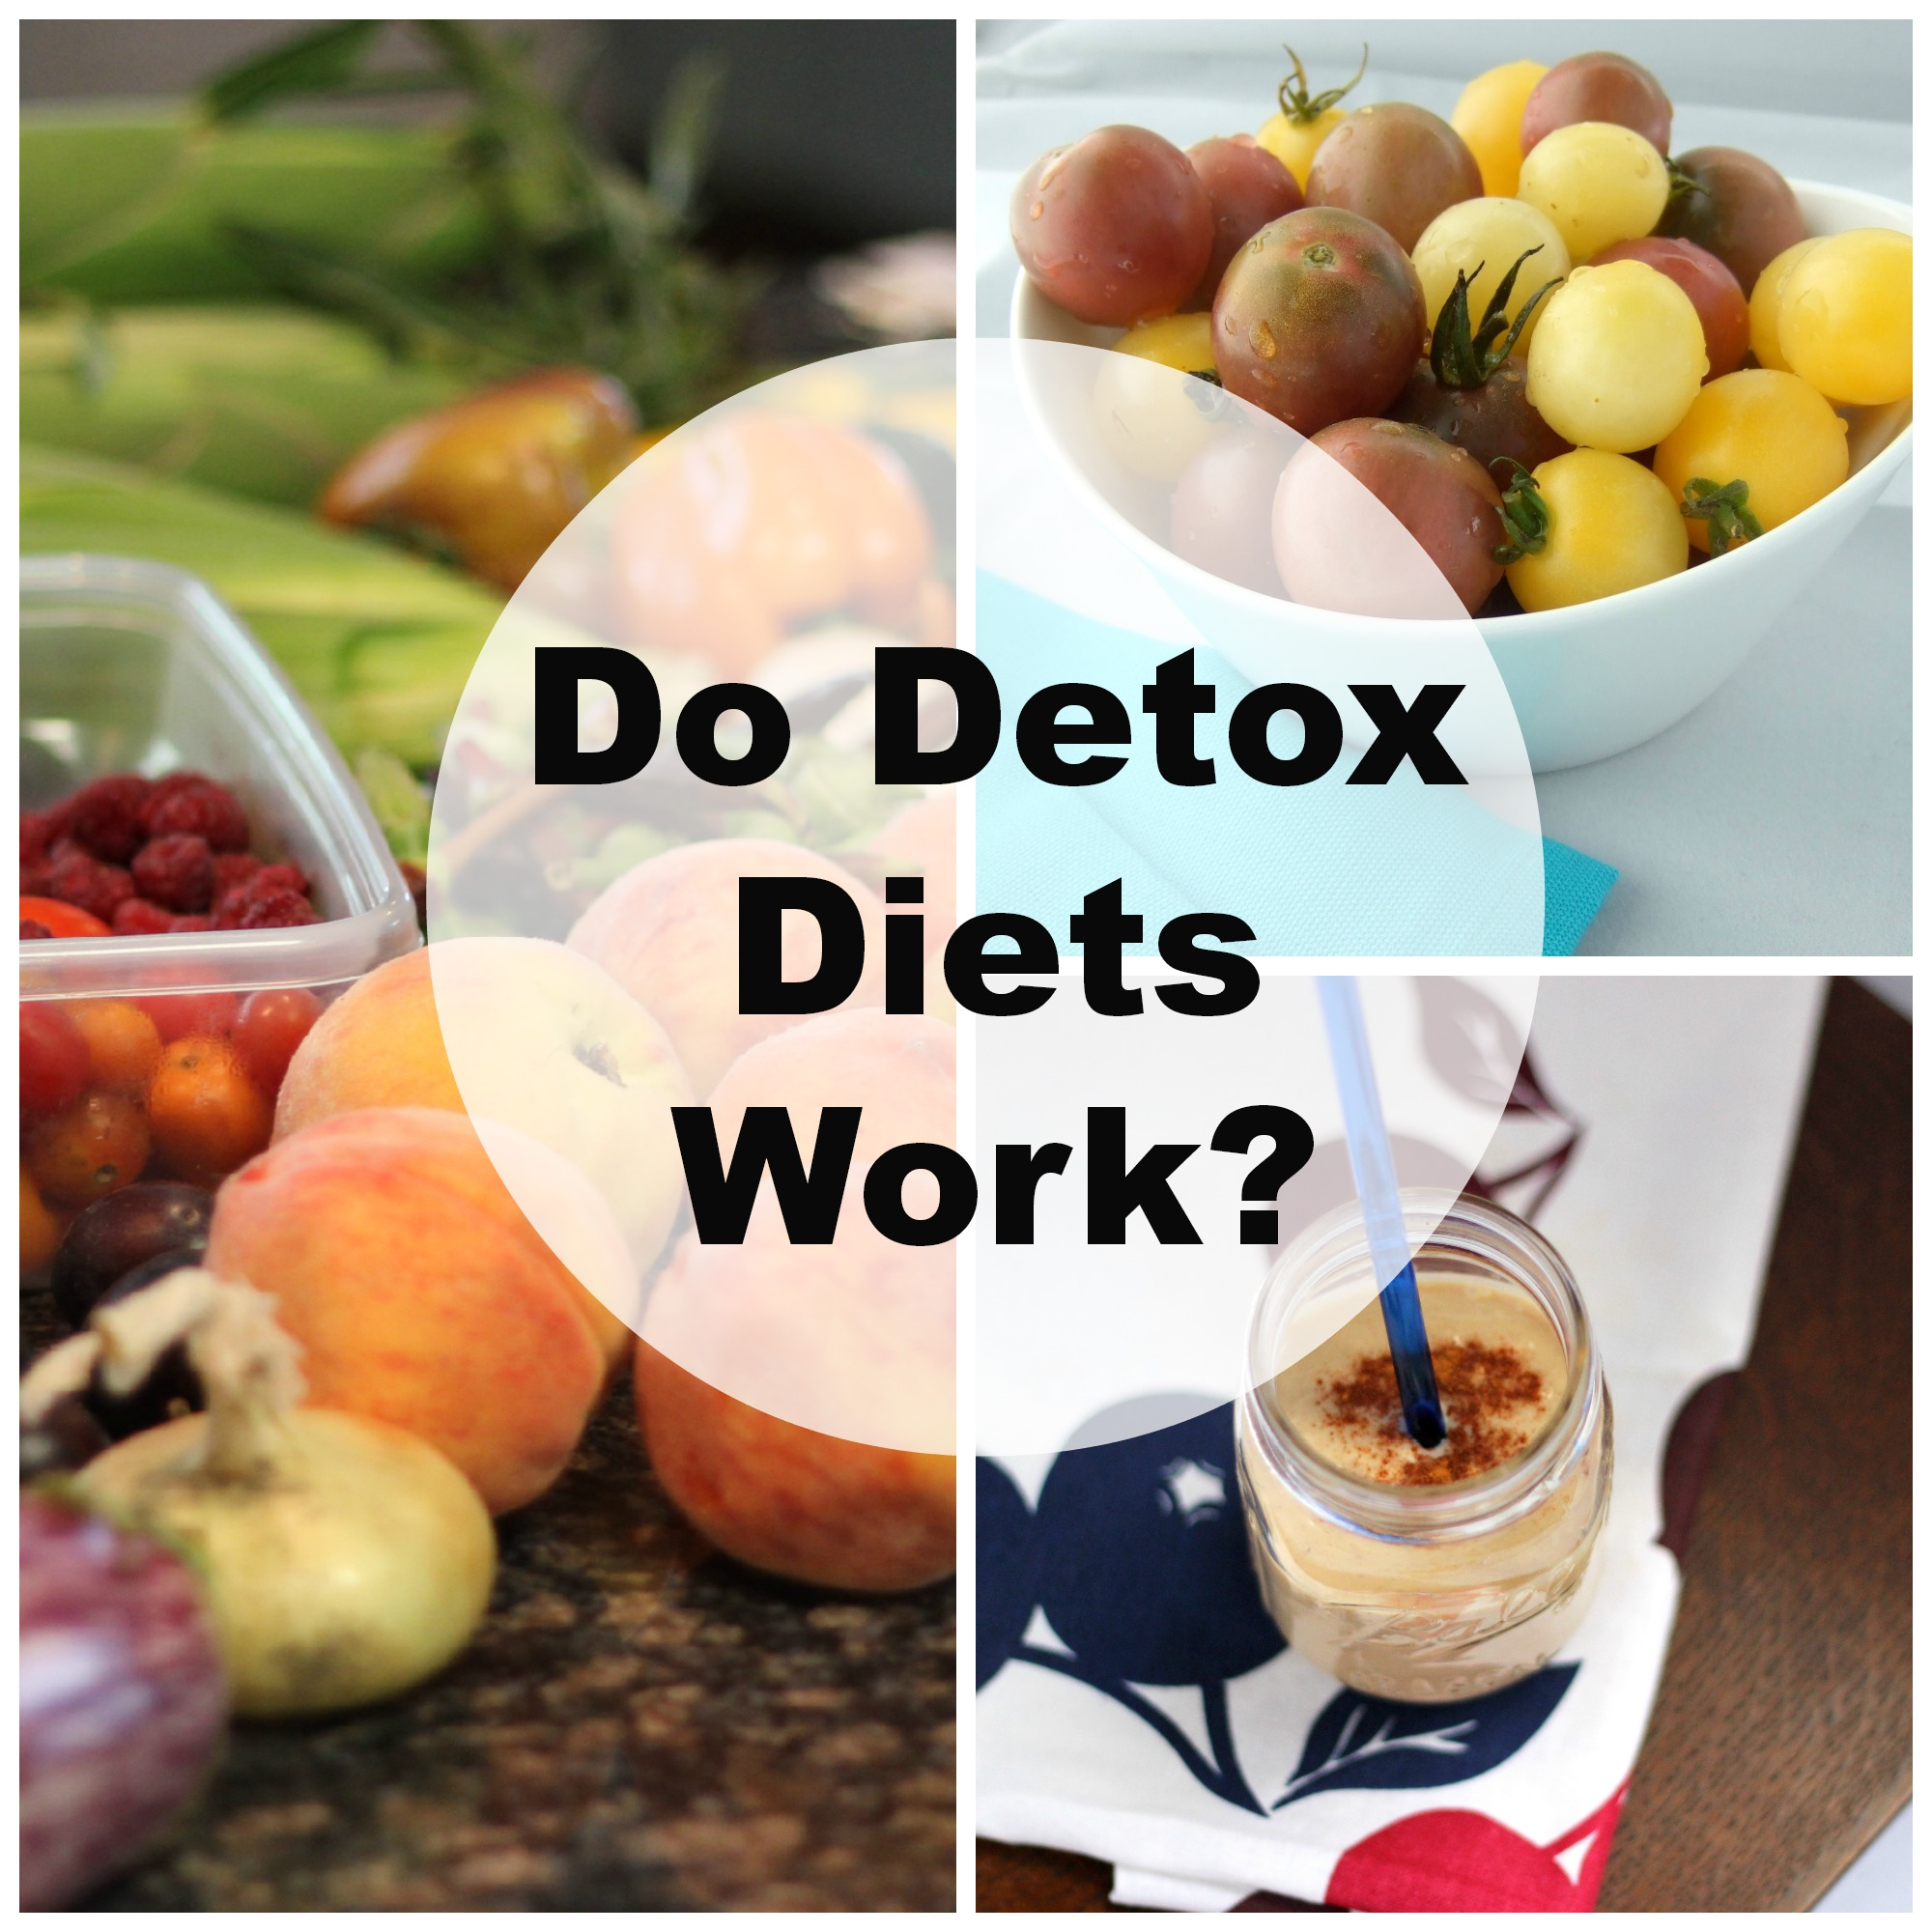 Are Detox Diets Healthy